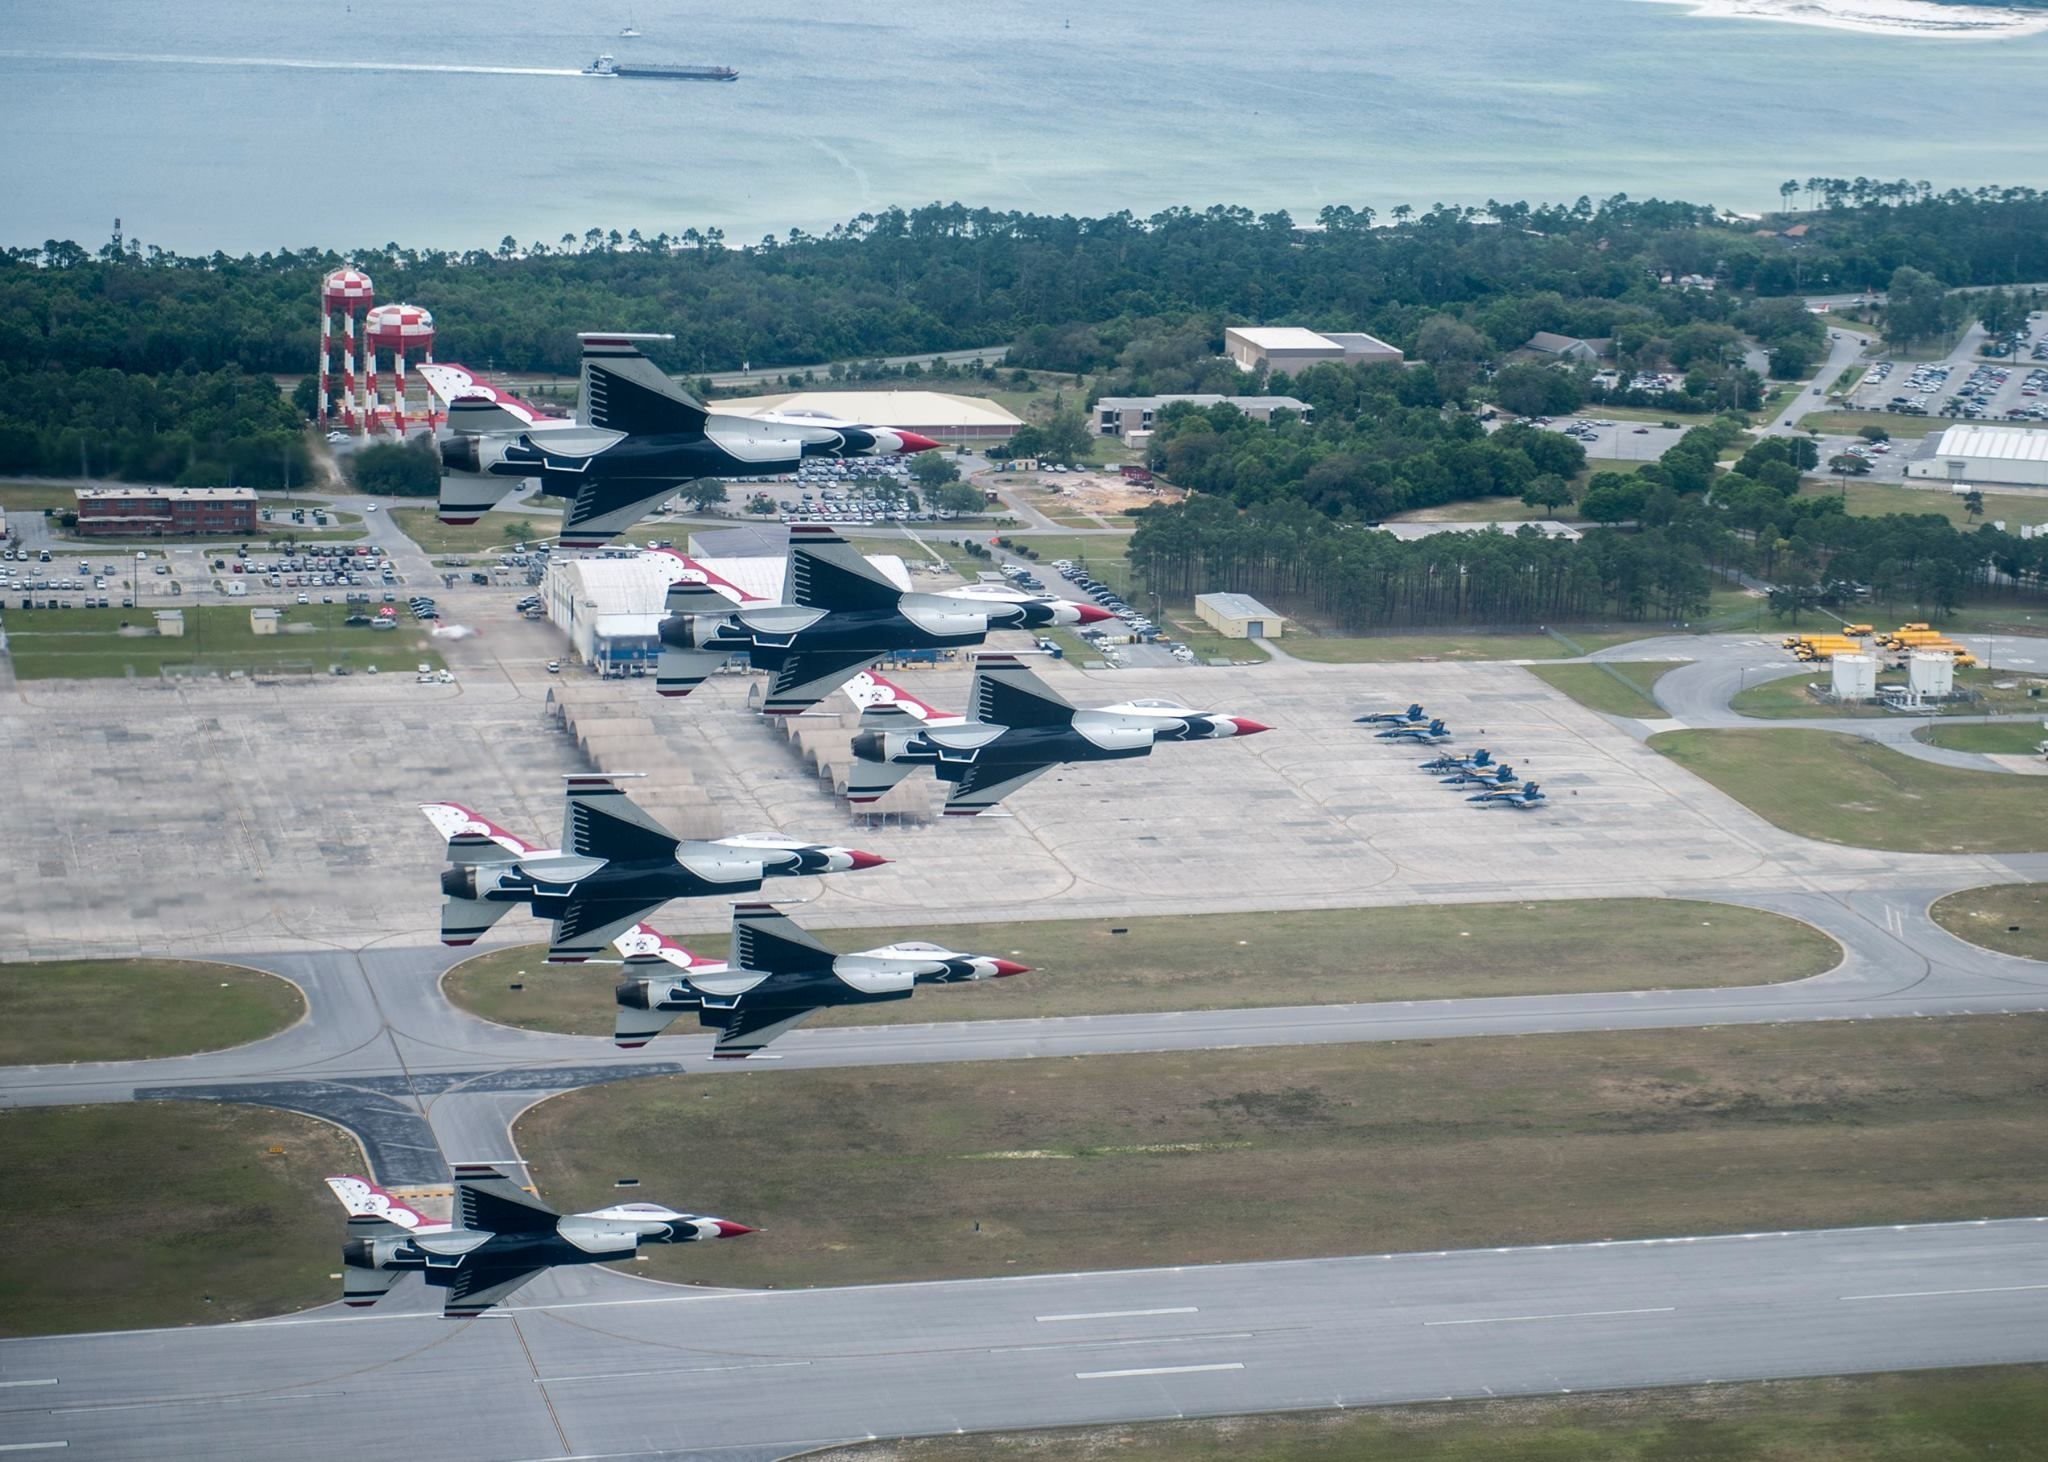 US Air Force Thunderbirds arrived at NAS Pensacola for